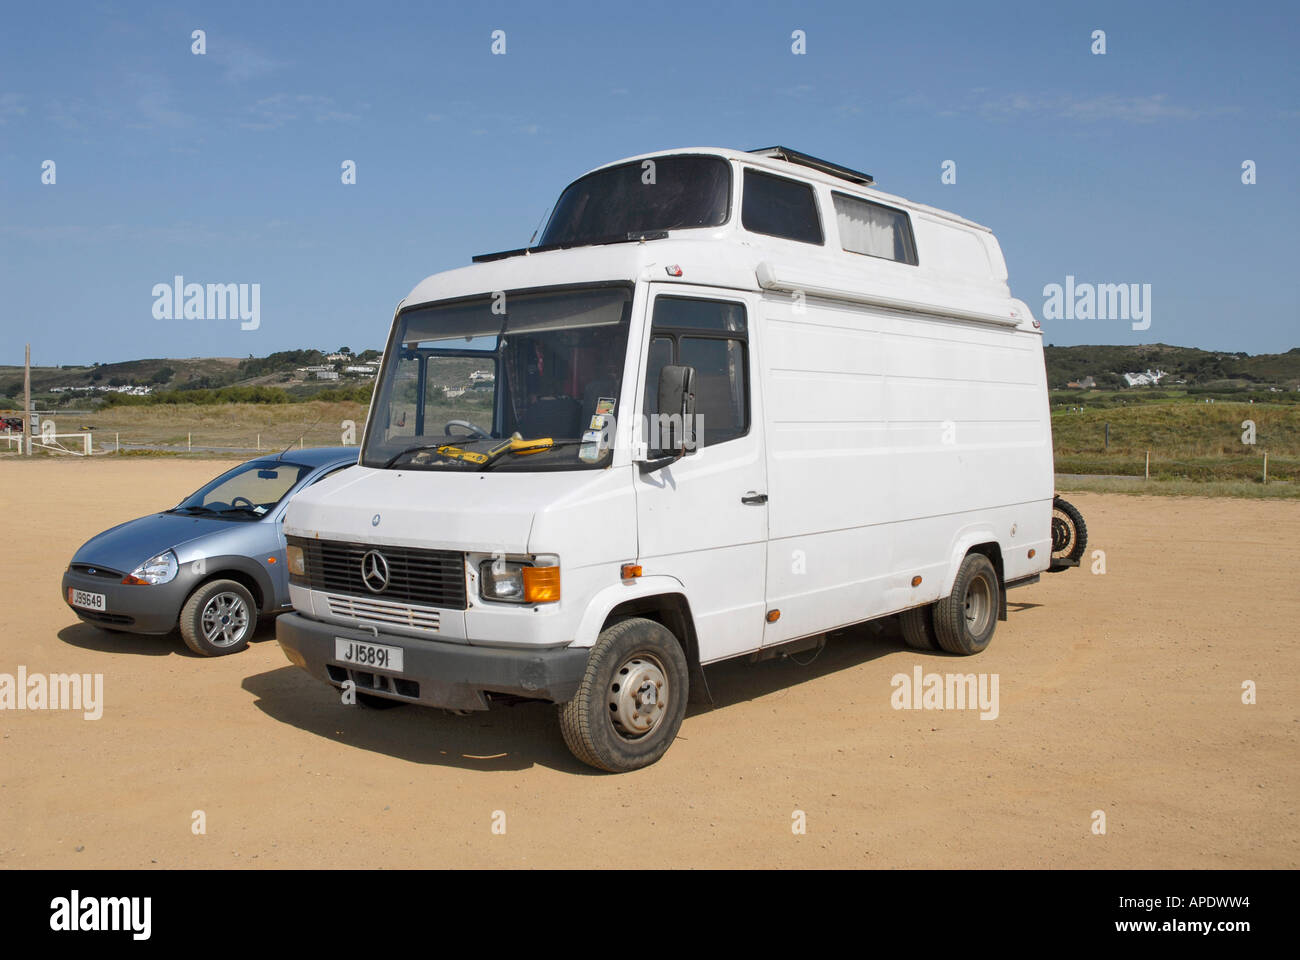 Stock Photo   White Mercedes Van With VW Camper Extension On The Roof